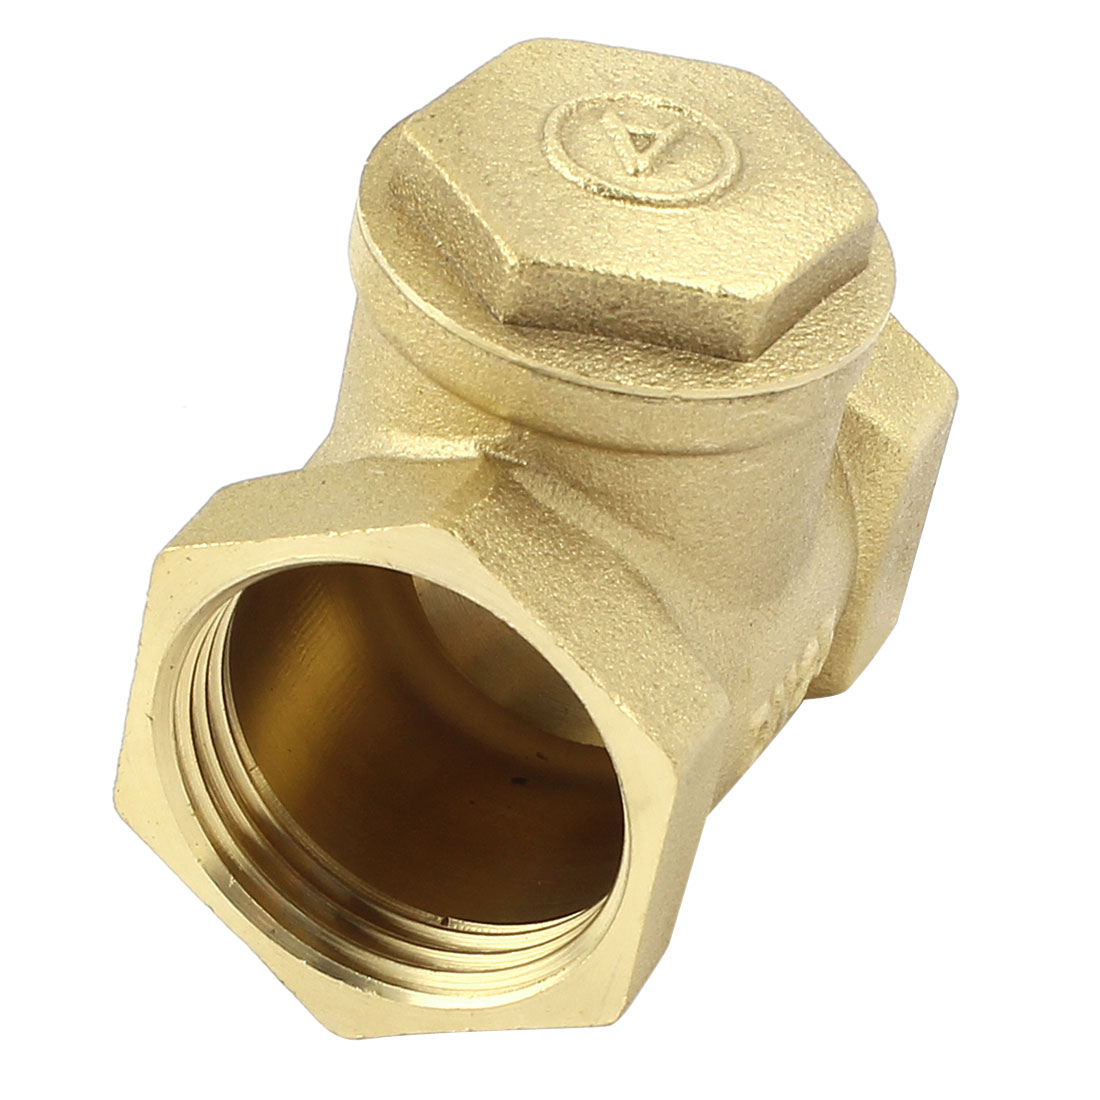 Water Pipe 1 BSP One Way Horizontal Type Check Valve Fitting Brass Tone